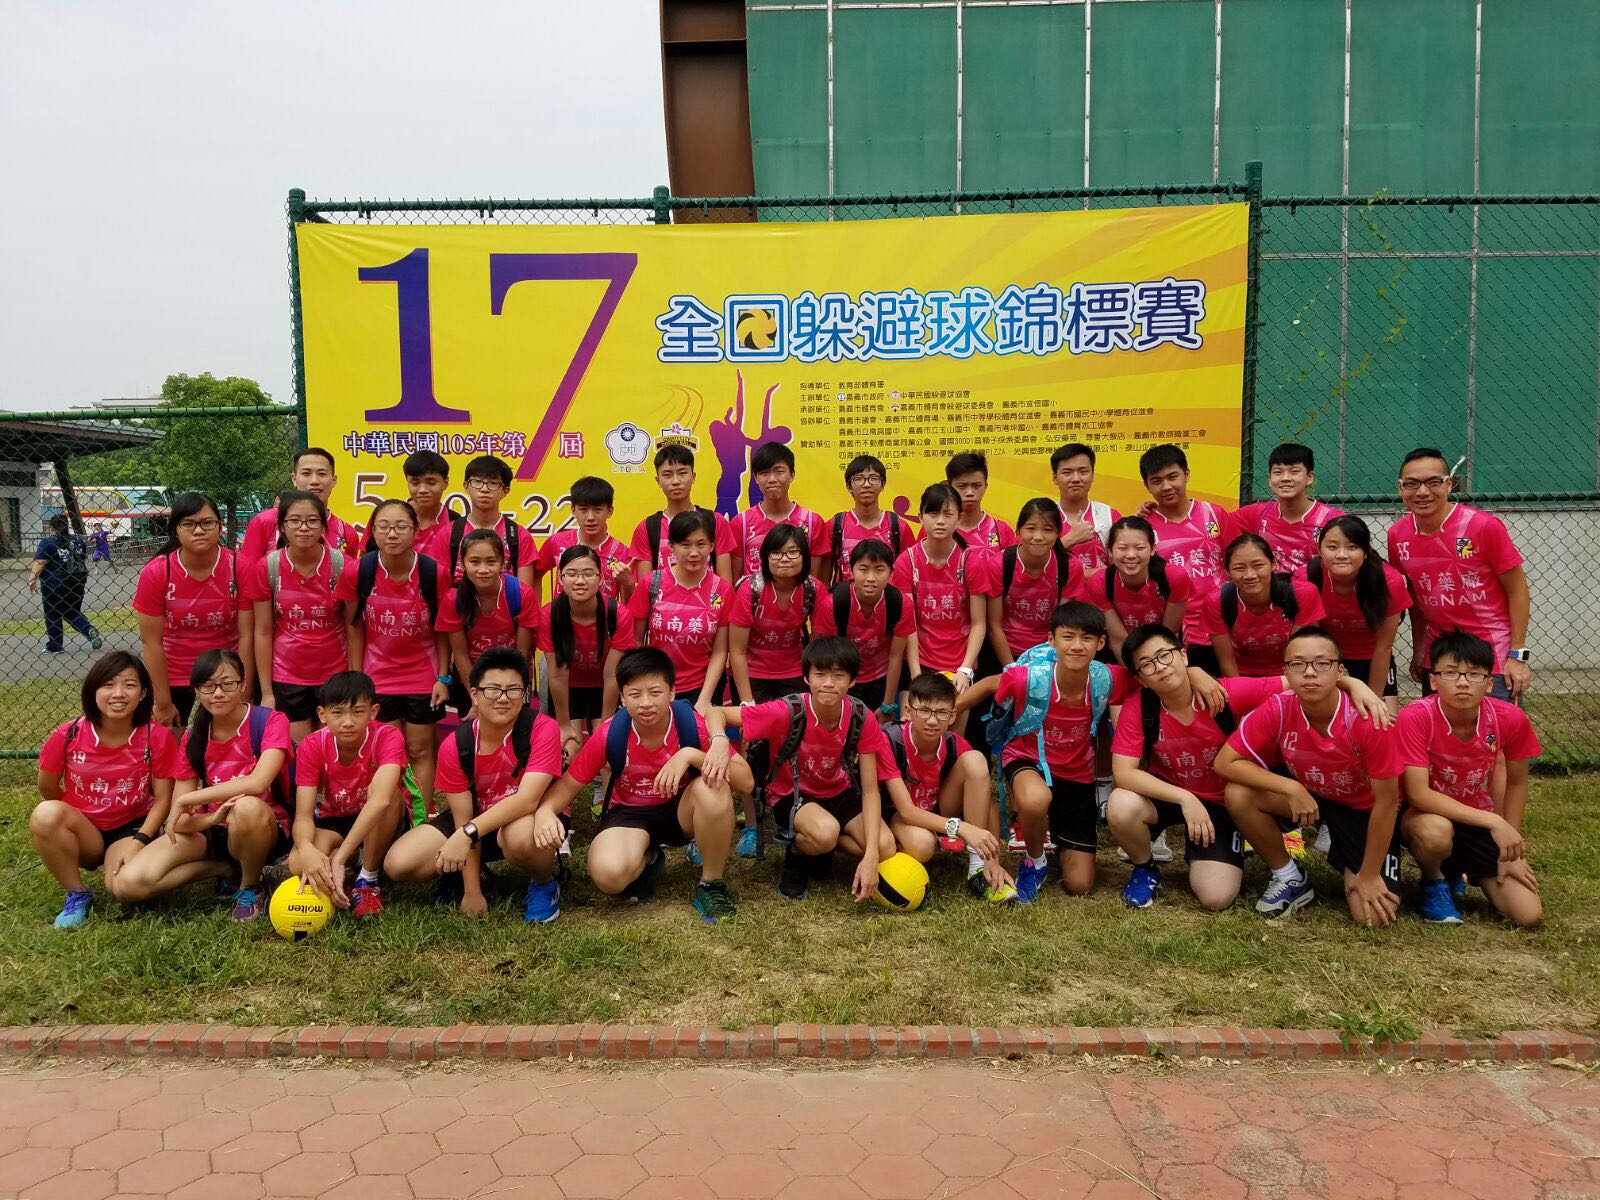 Taiwan 105, The 17th Nationwide Dodgeball Championship